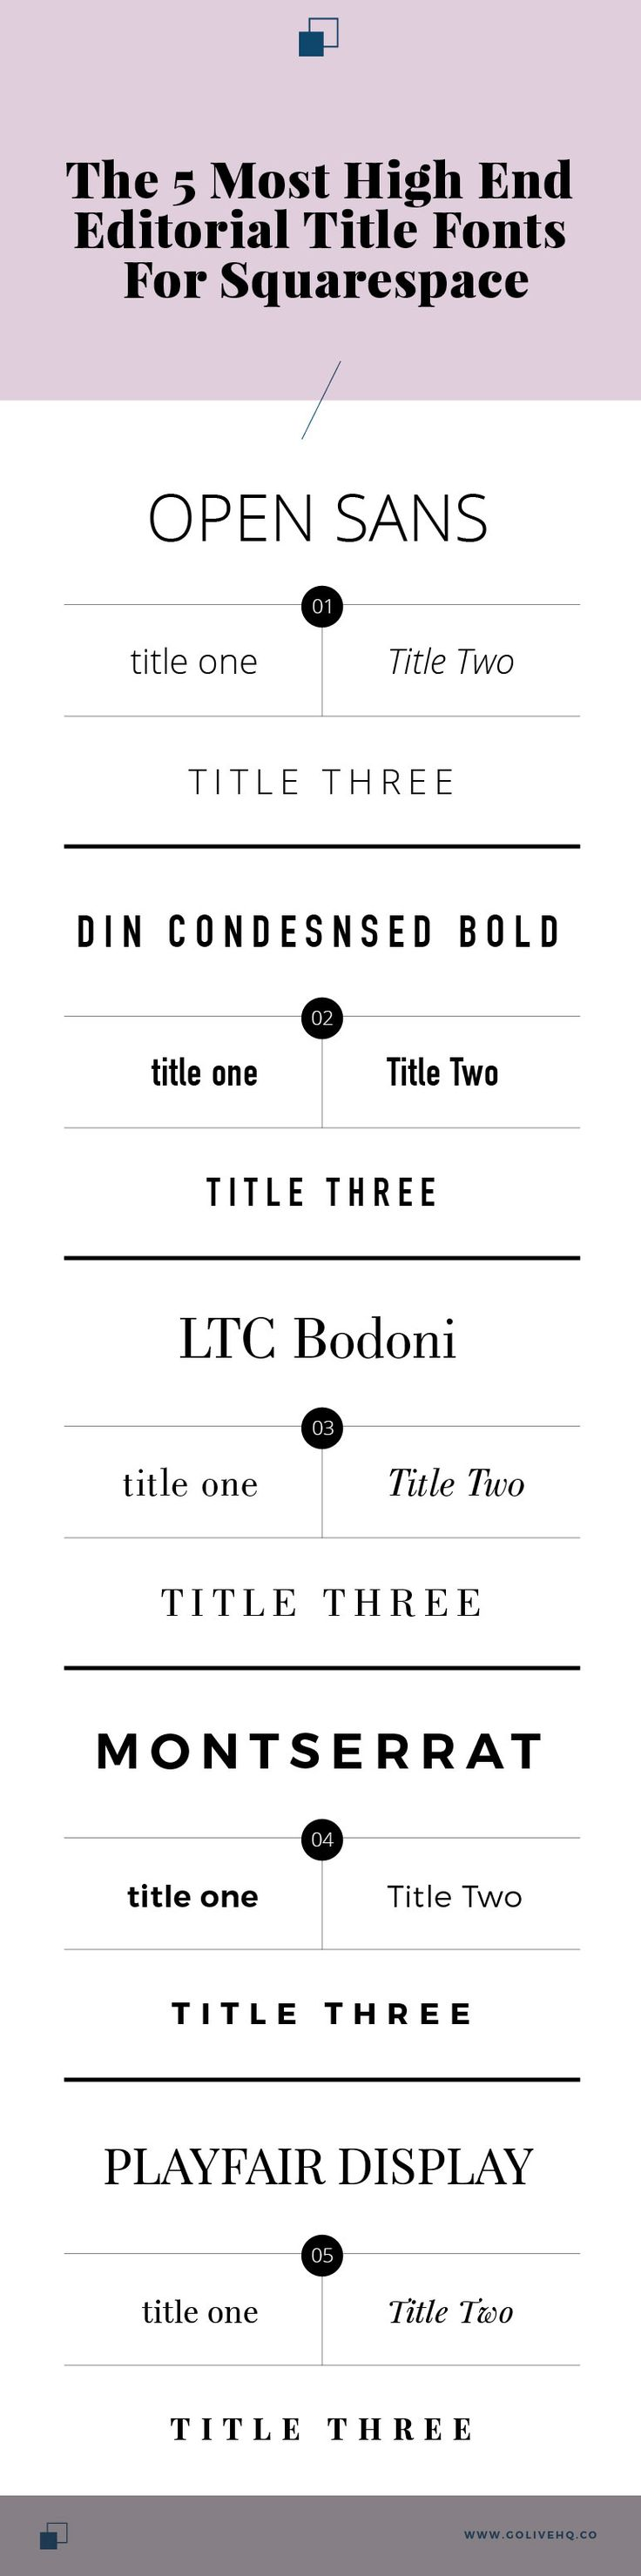 high end fonts for Squarespace | golivehq.co